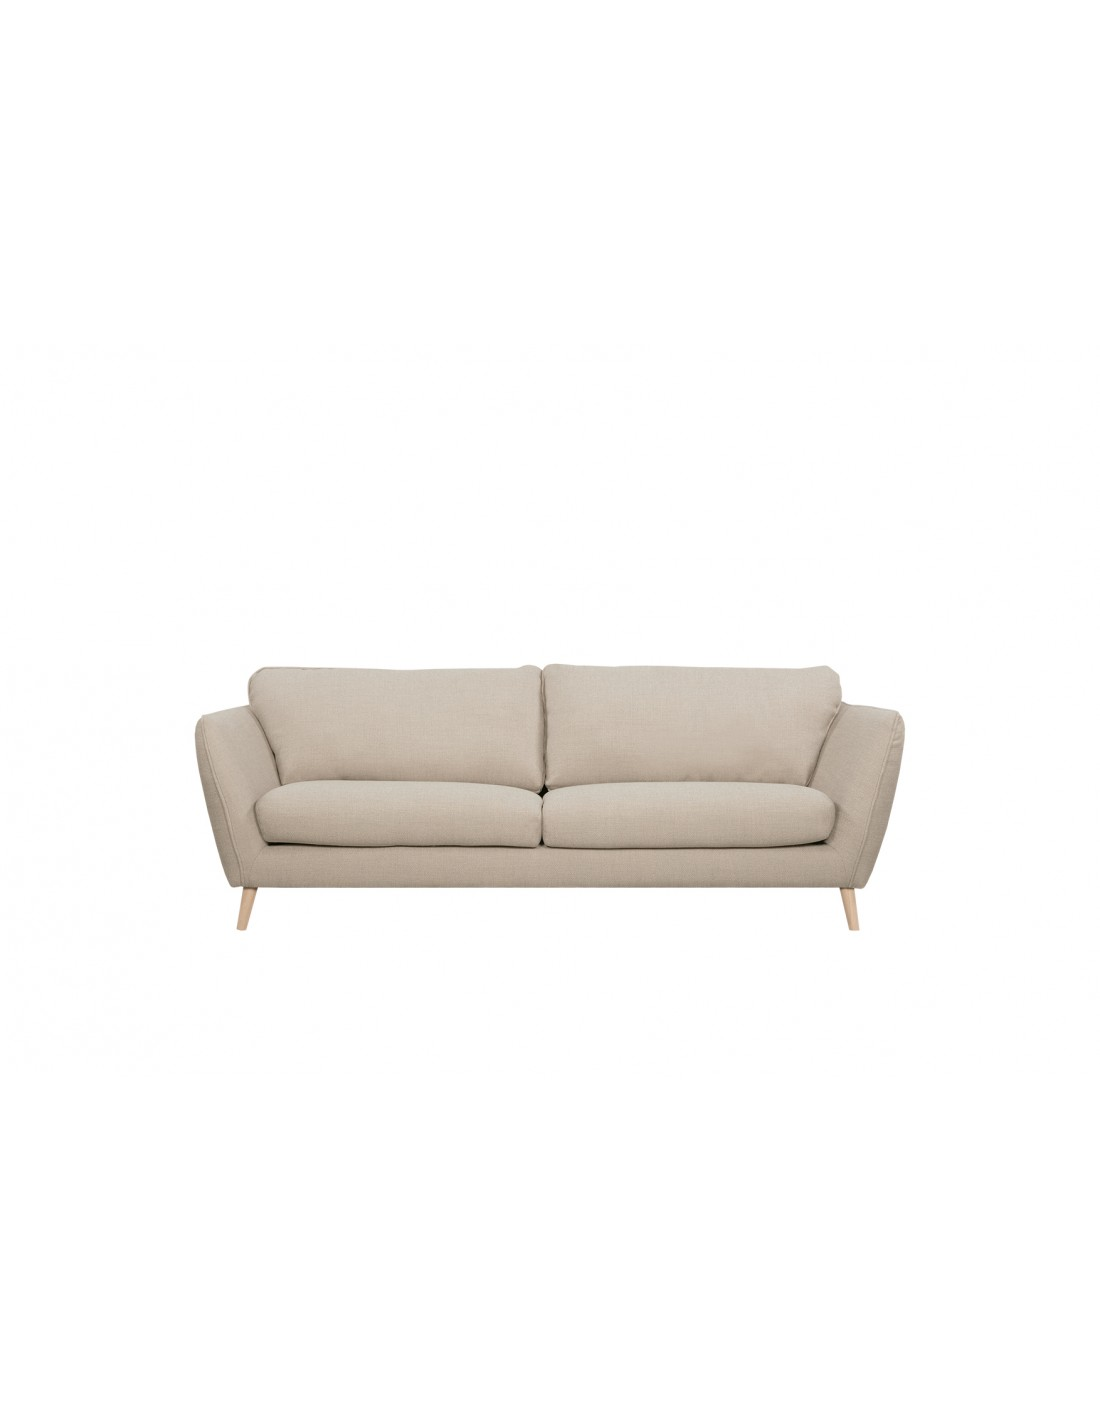 ABBE 3 seater with feet